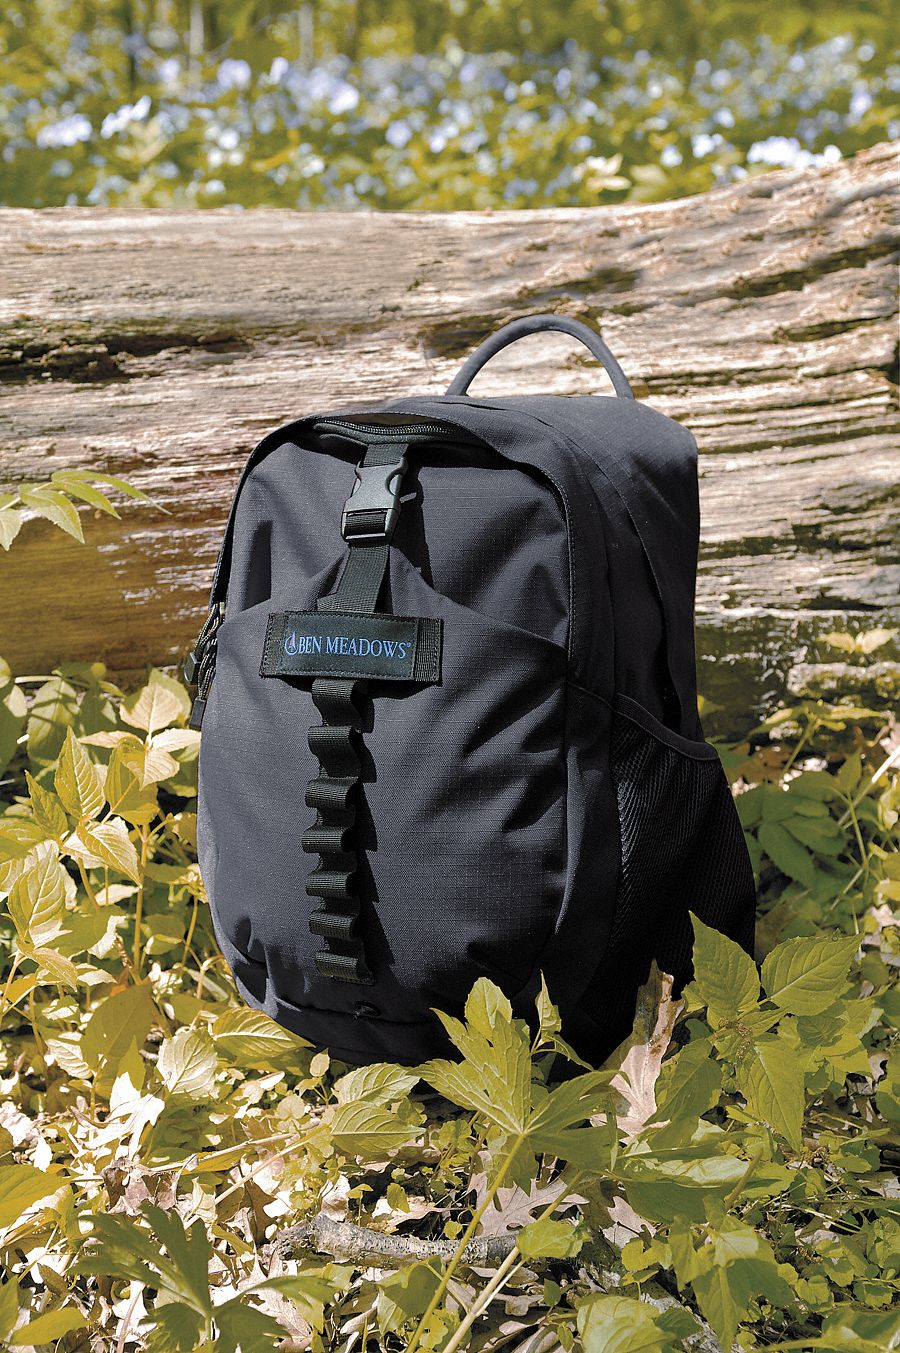 Black Polyester Daypack; Number of Pockets 10